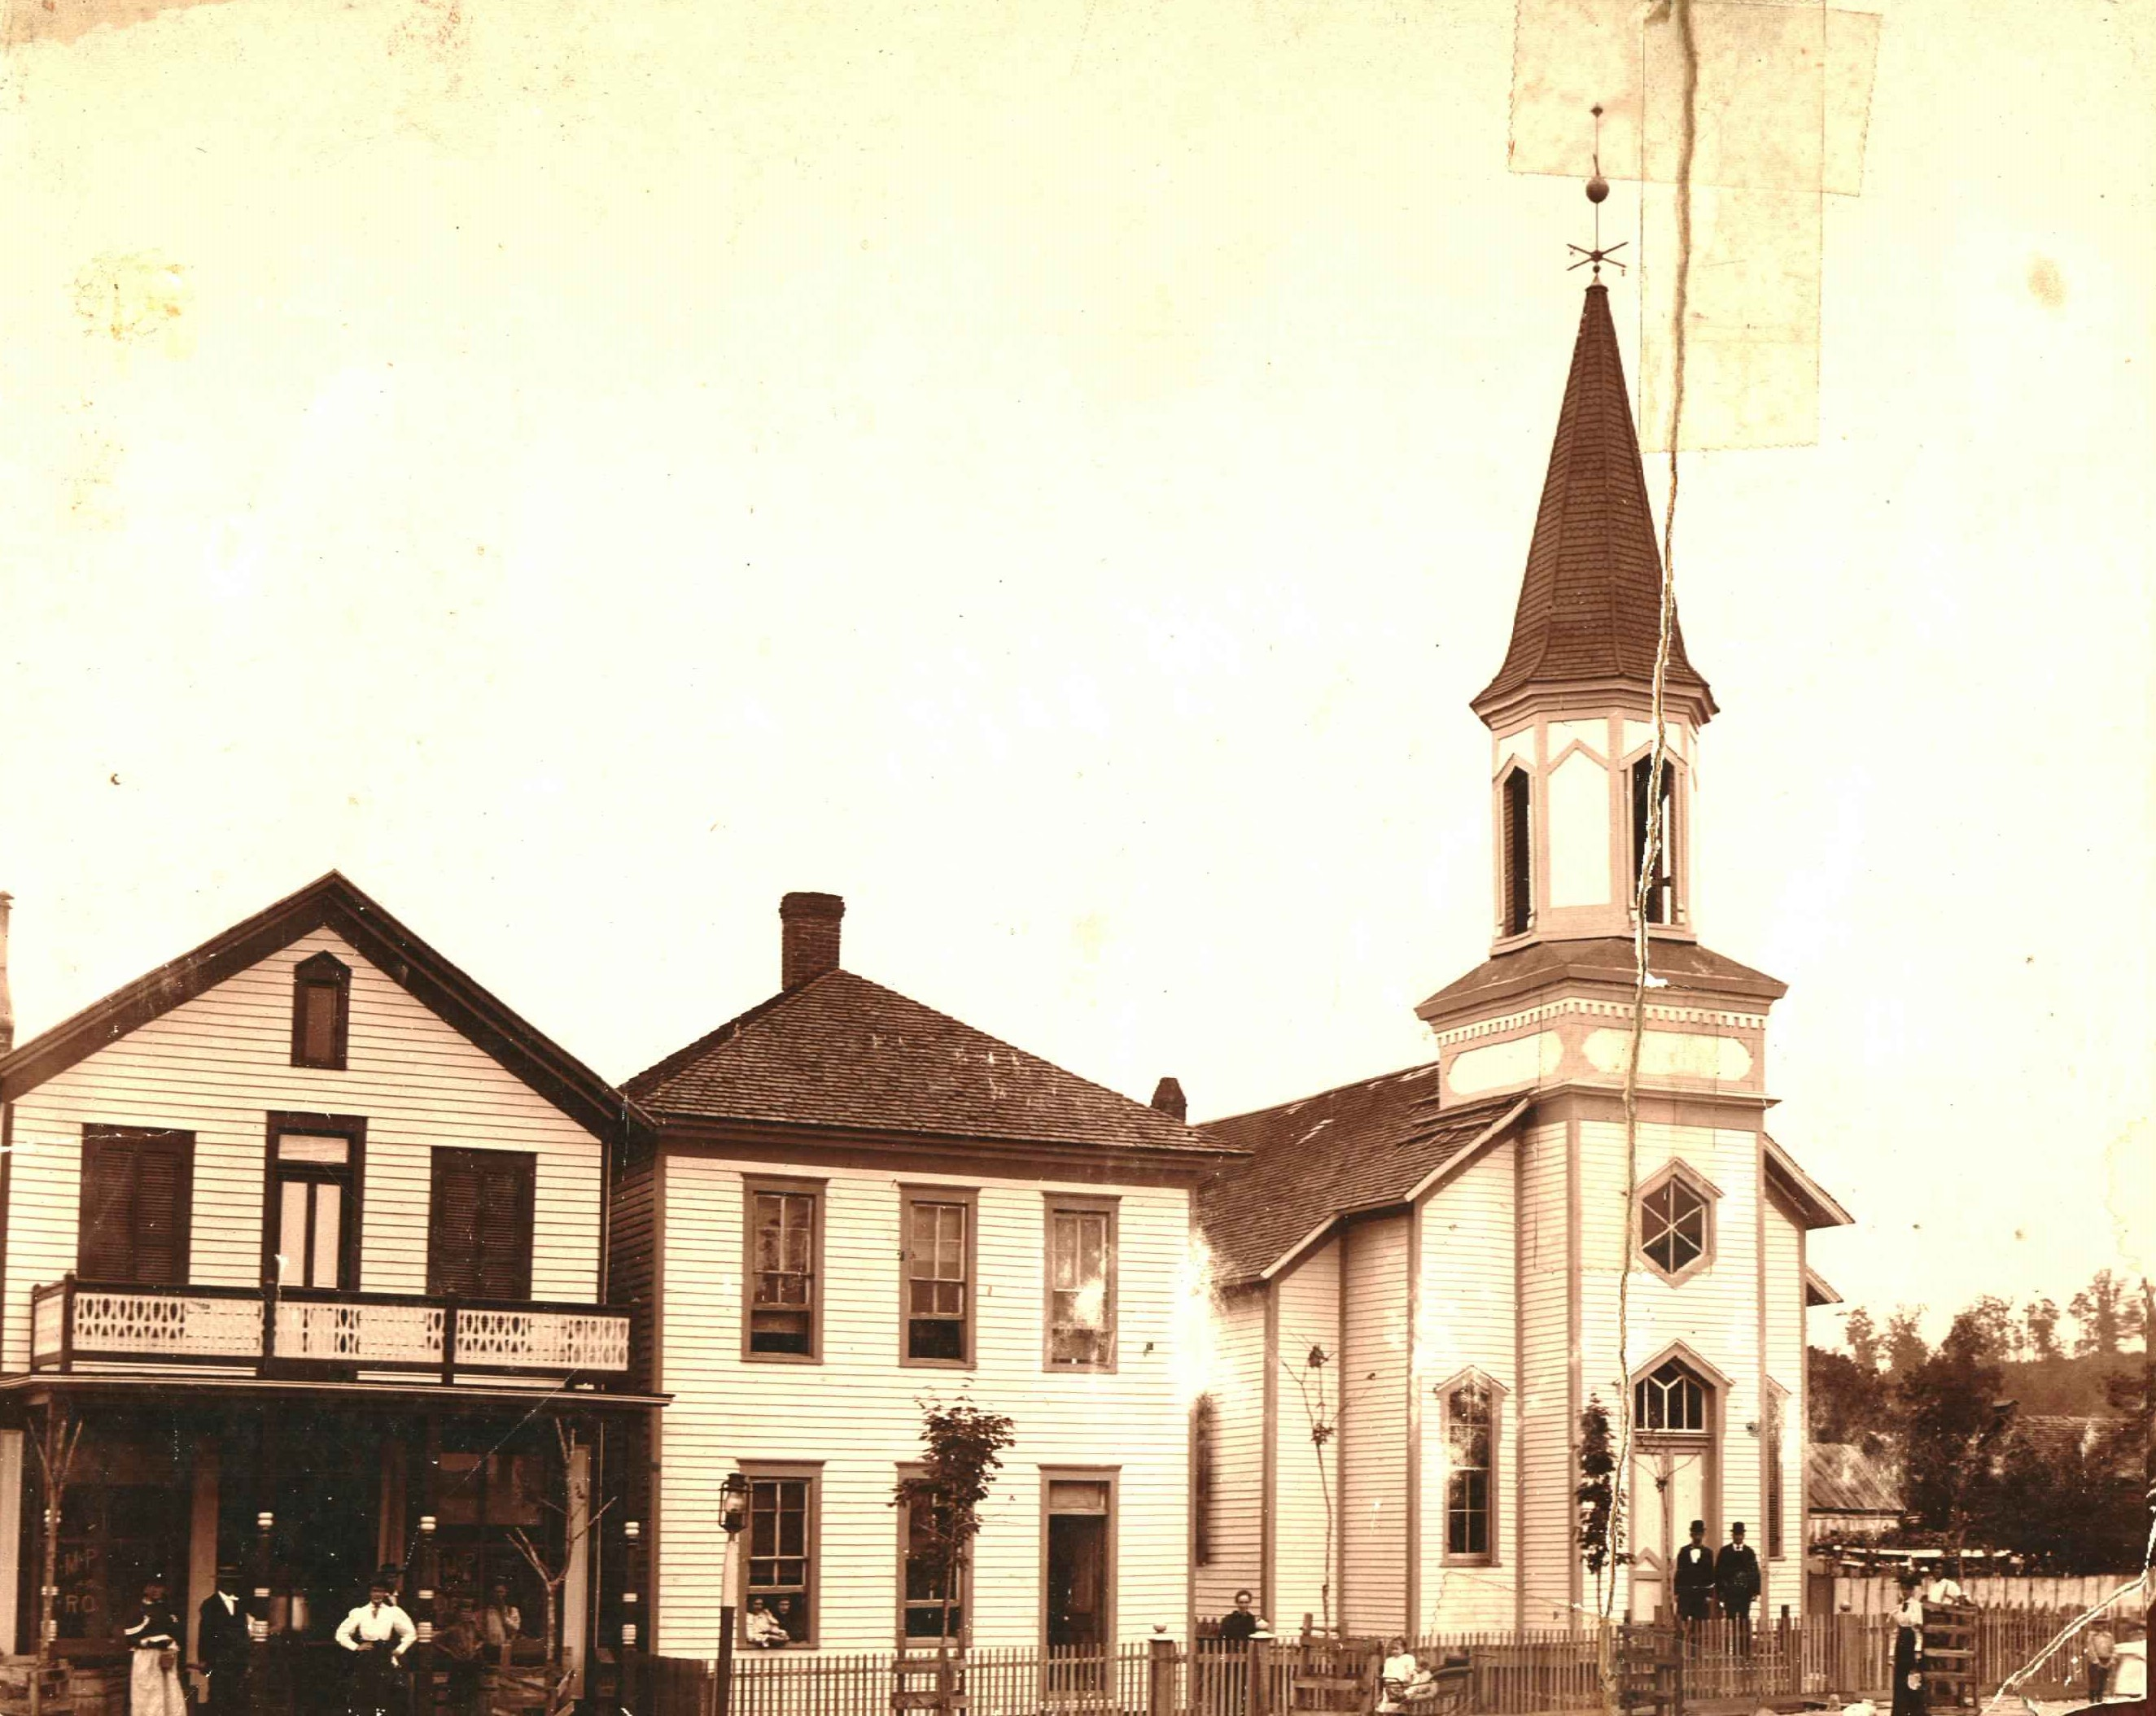 The sanctuary building sometime around the 1890s. The house to its immediate left is likely the parsonage, which was demolished in 1965.